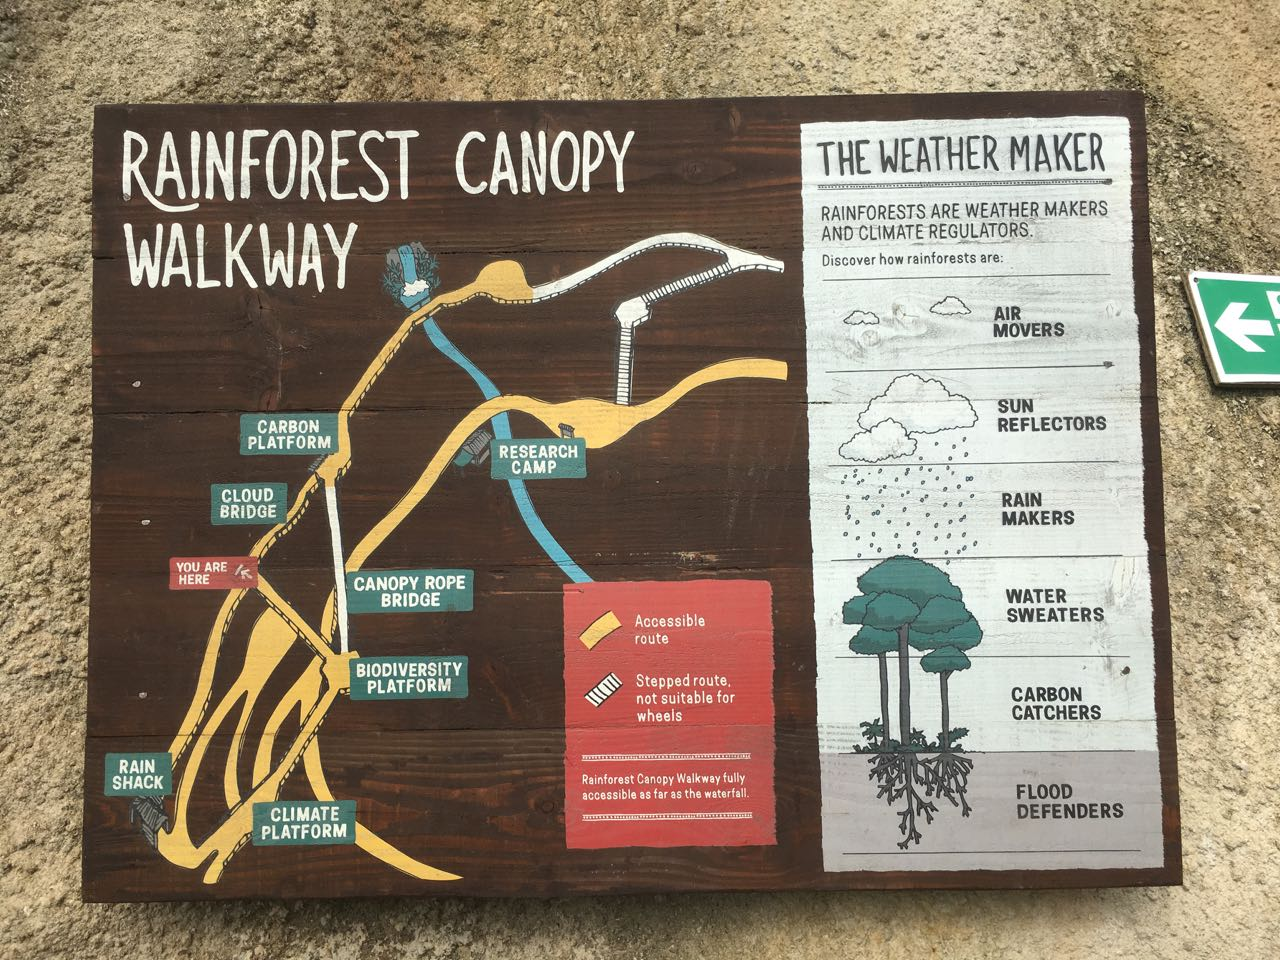 Map of the rainforest canopy walkway explaining why rainforest are so important